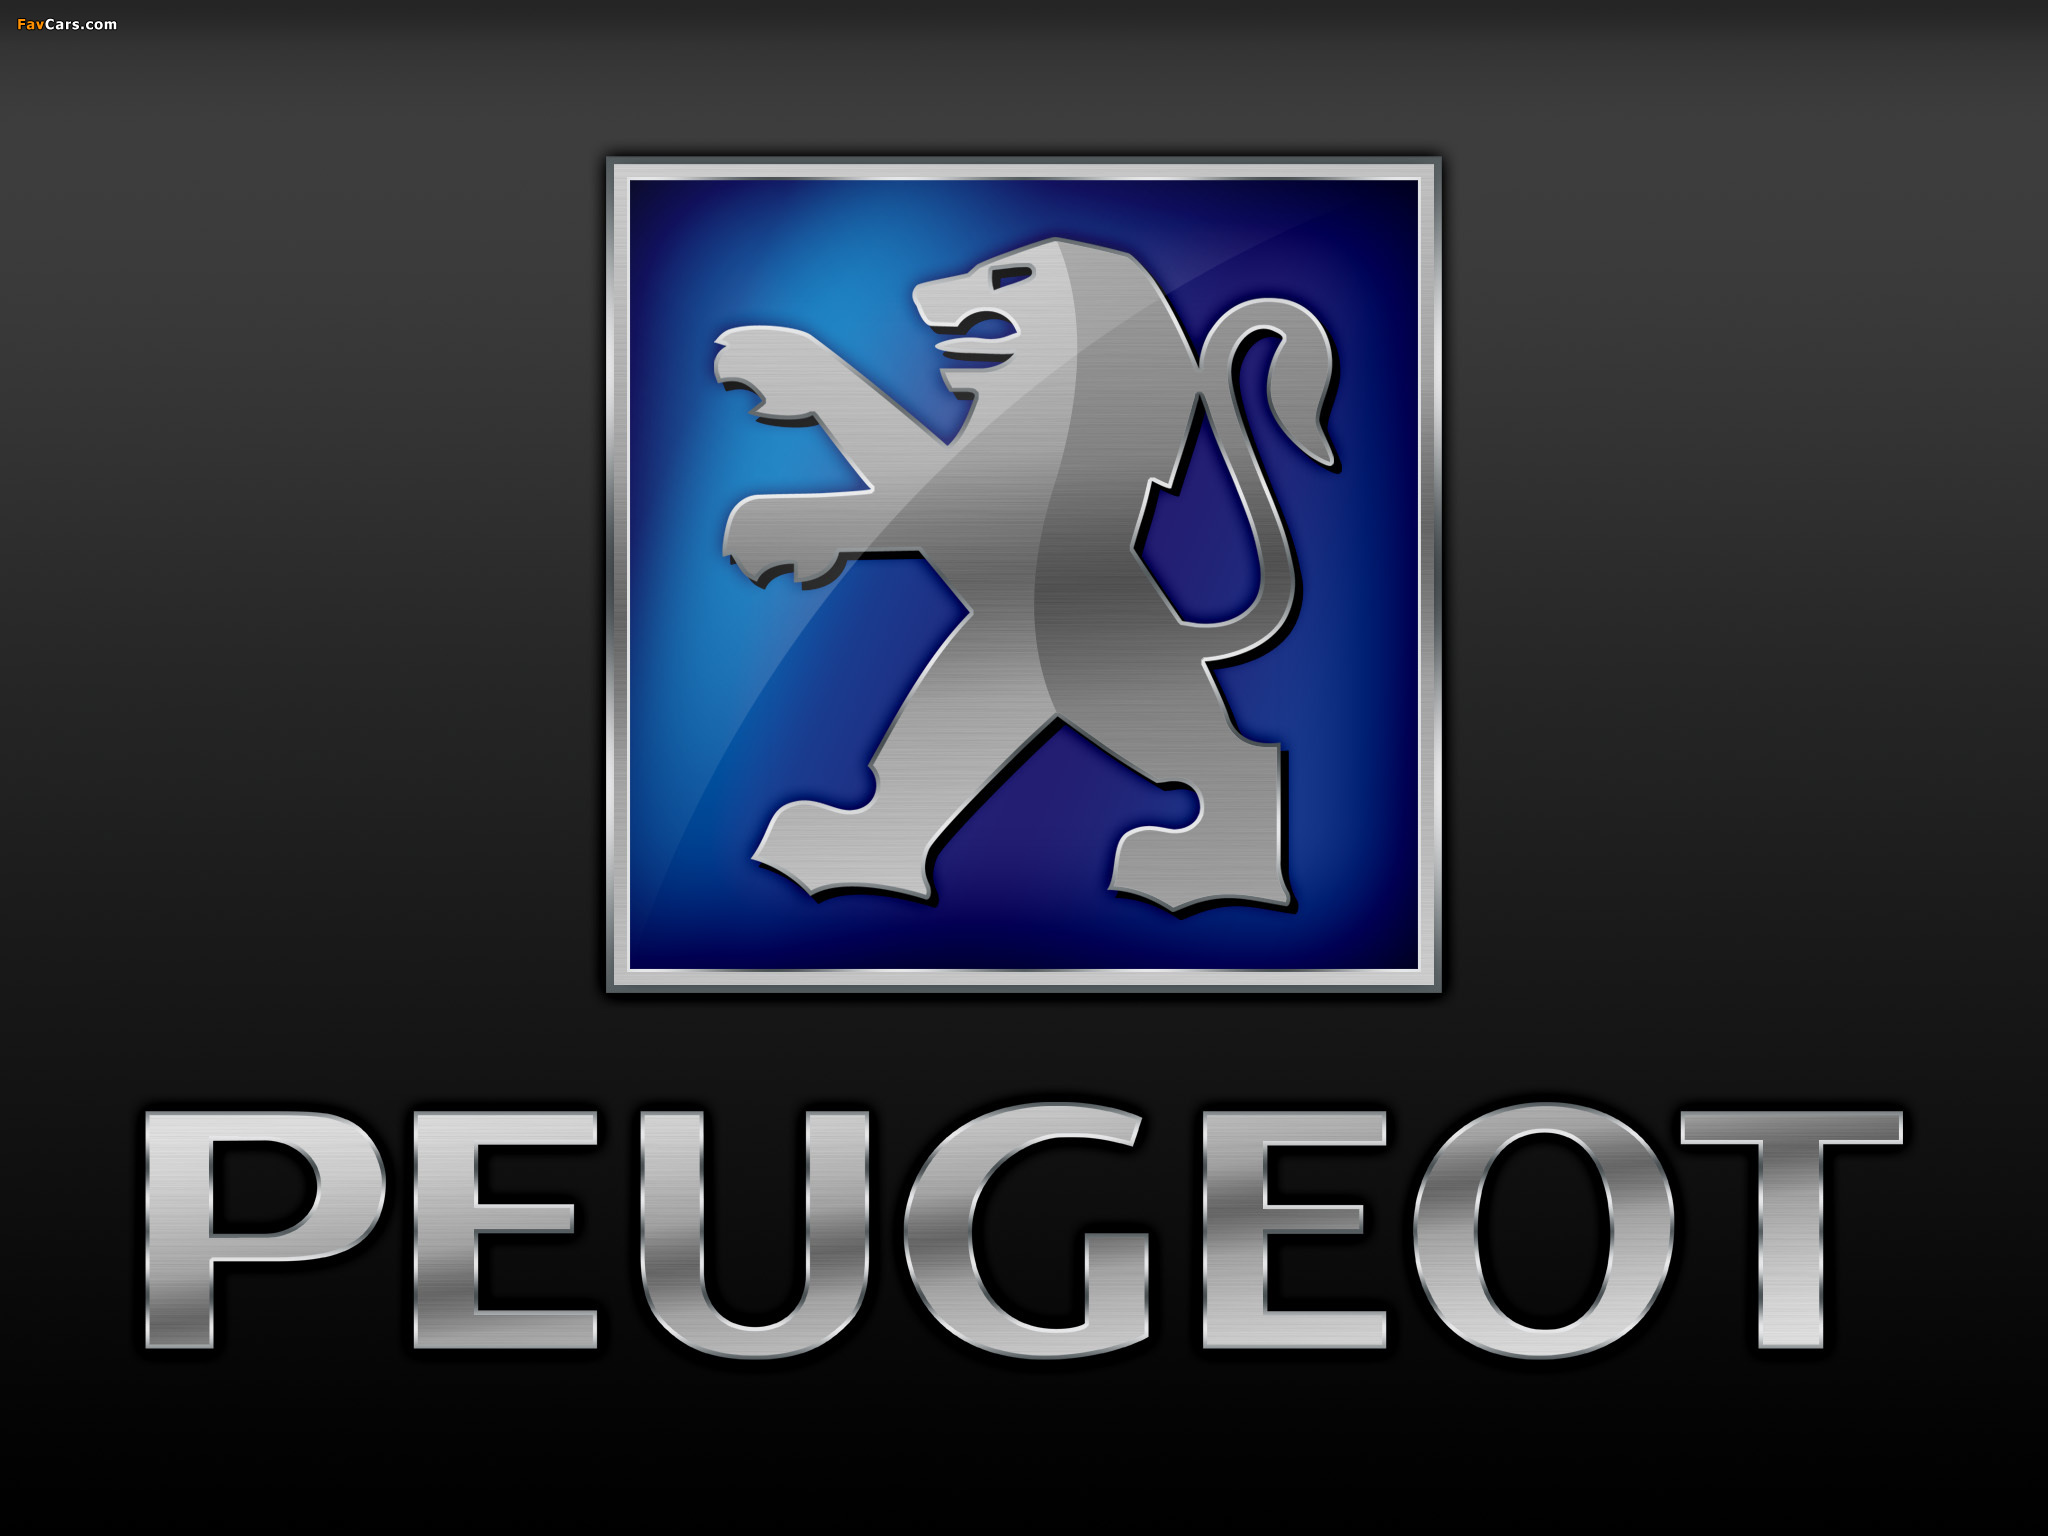 Peugeot wallpapers (2048 x 1536)